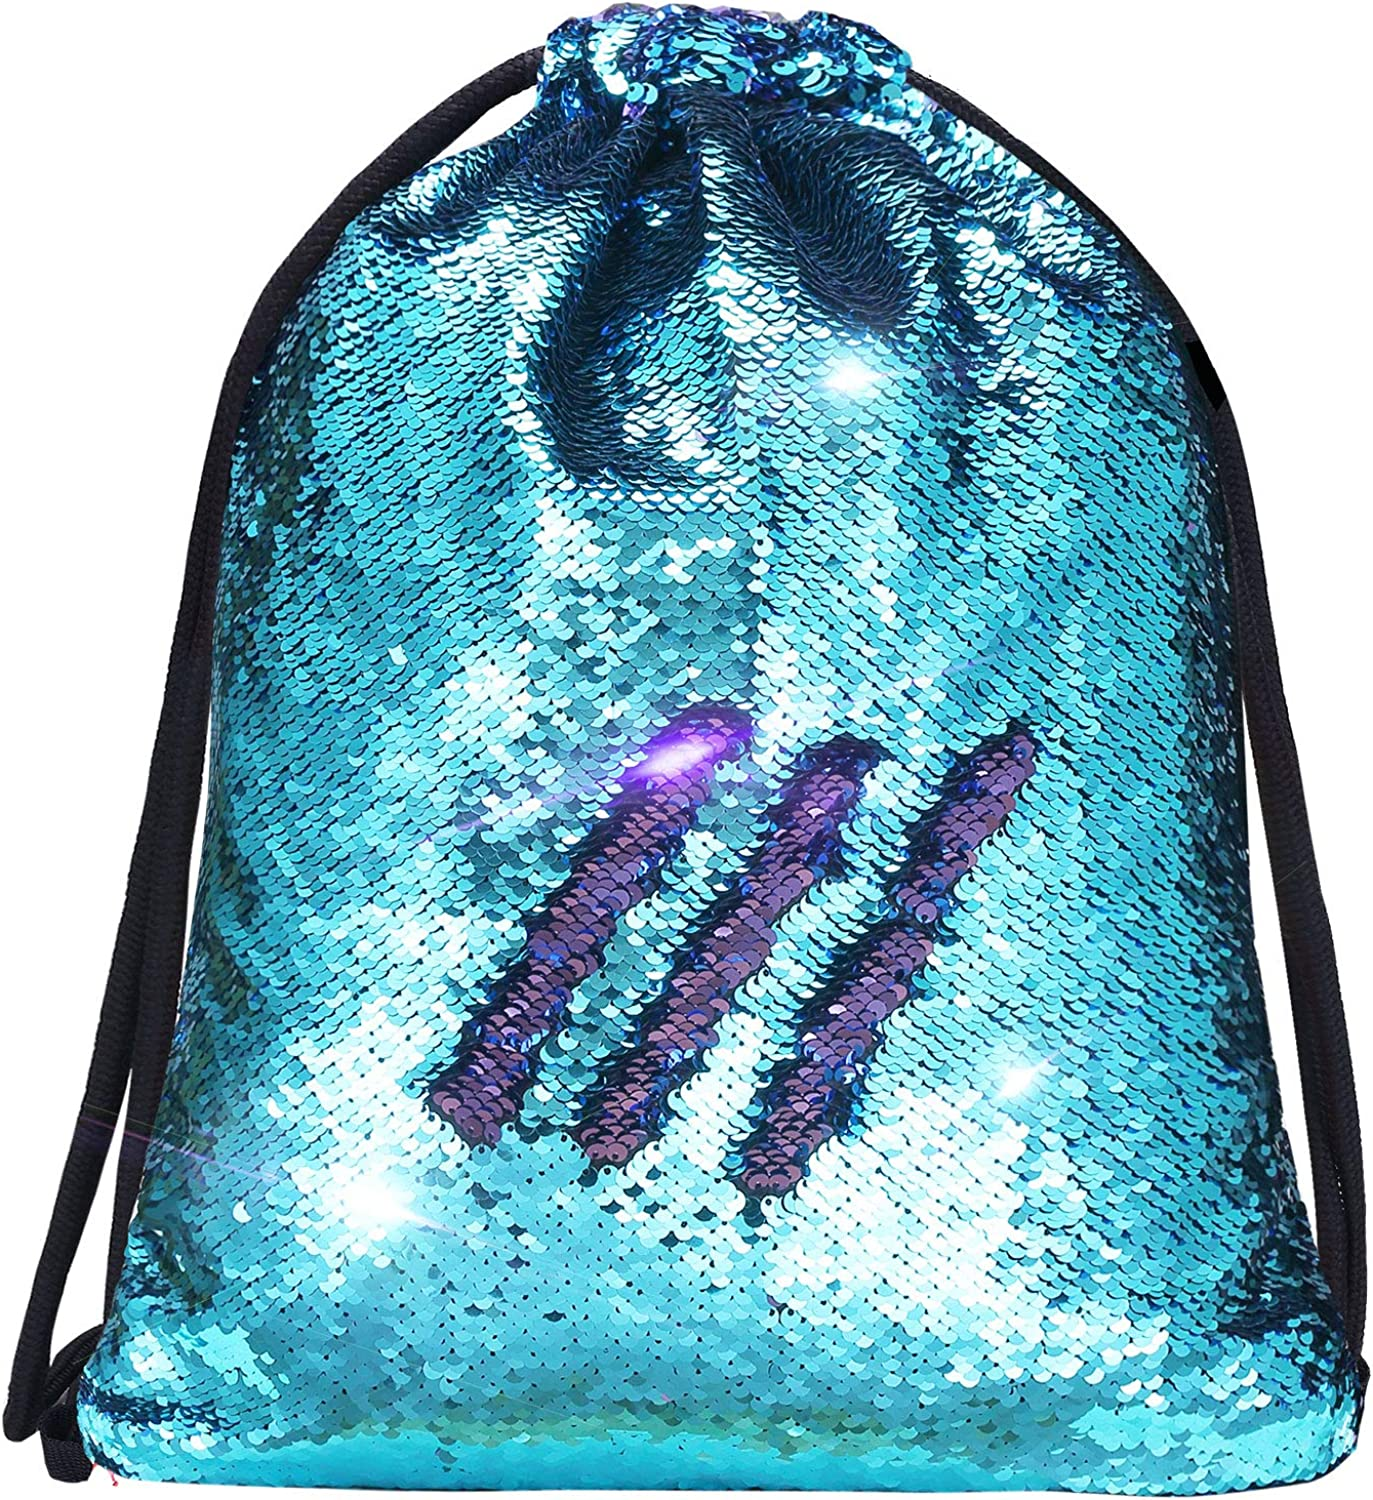 Blue//Pink /& Rainbow//Silver Sequin Drawstring Bag 2 Pack Reversible Sequin Dance Bags Backpacks for Girls Kids Sequin Mermaid Backpack